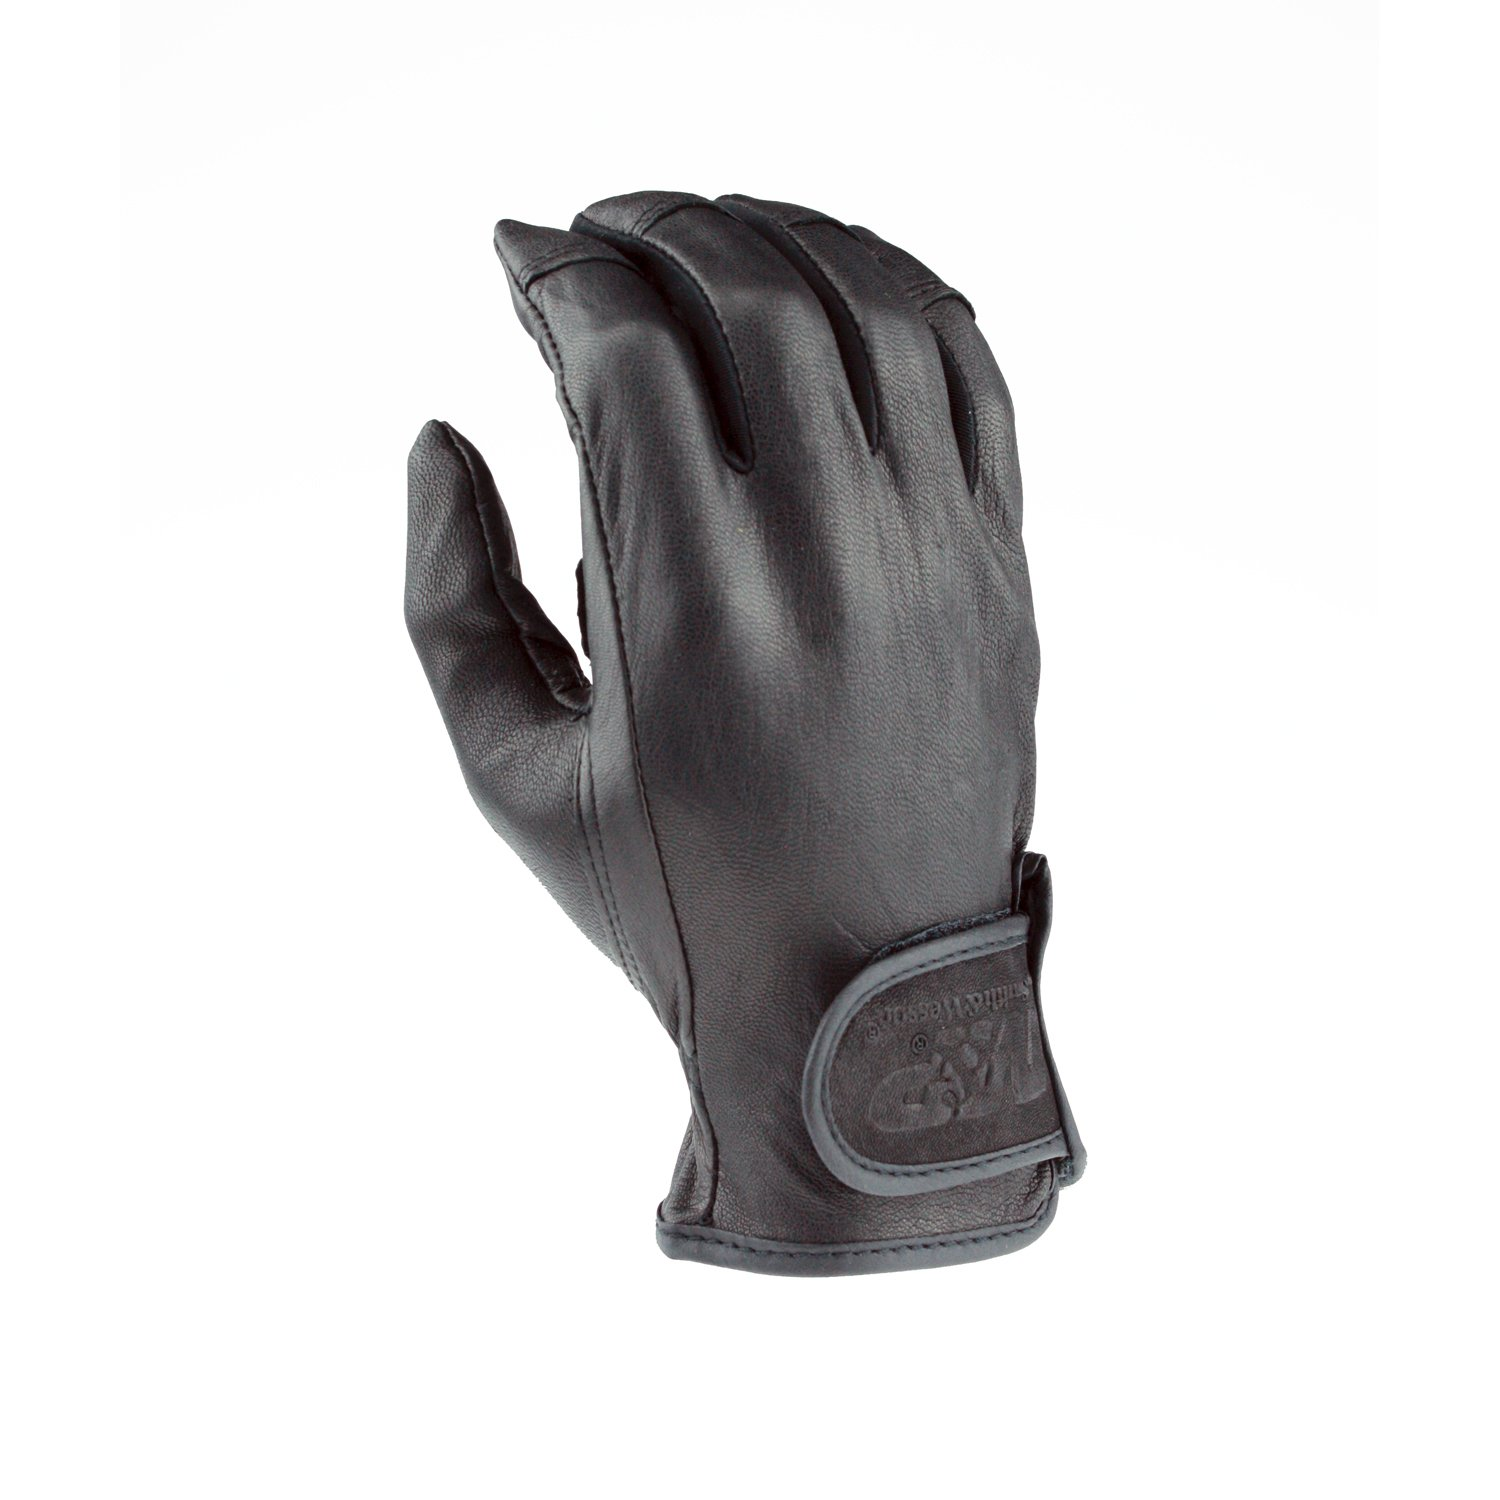 M&P by Smith & Wesson MP309 Premium Goat Skin Gloves - Large